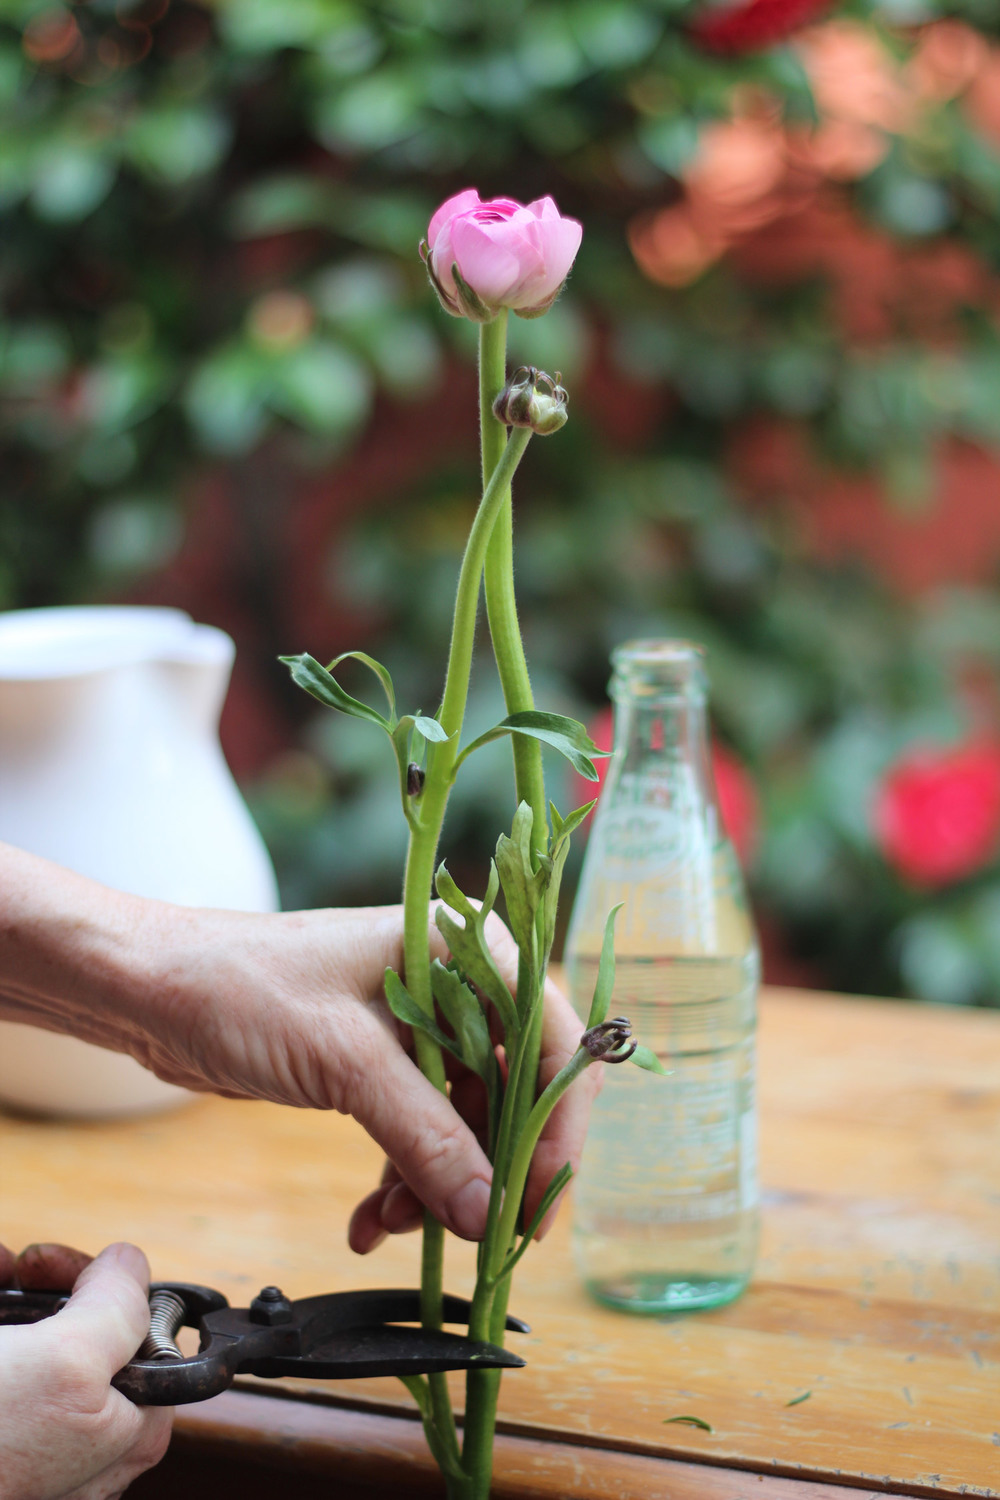 Hold flower next to bottle for cut line.